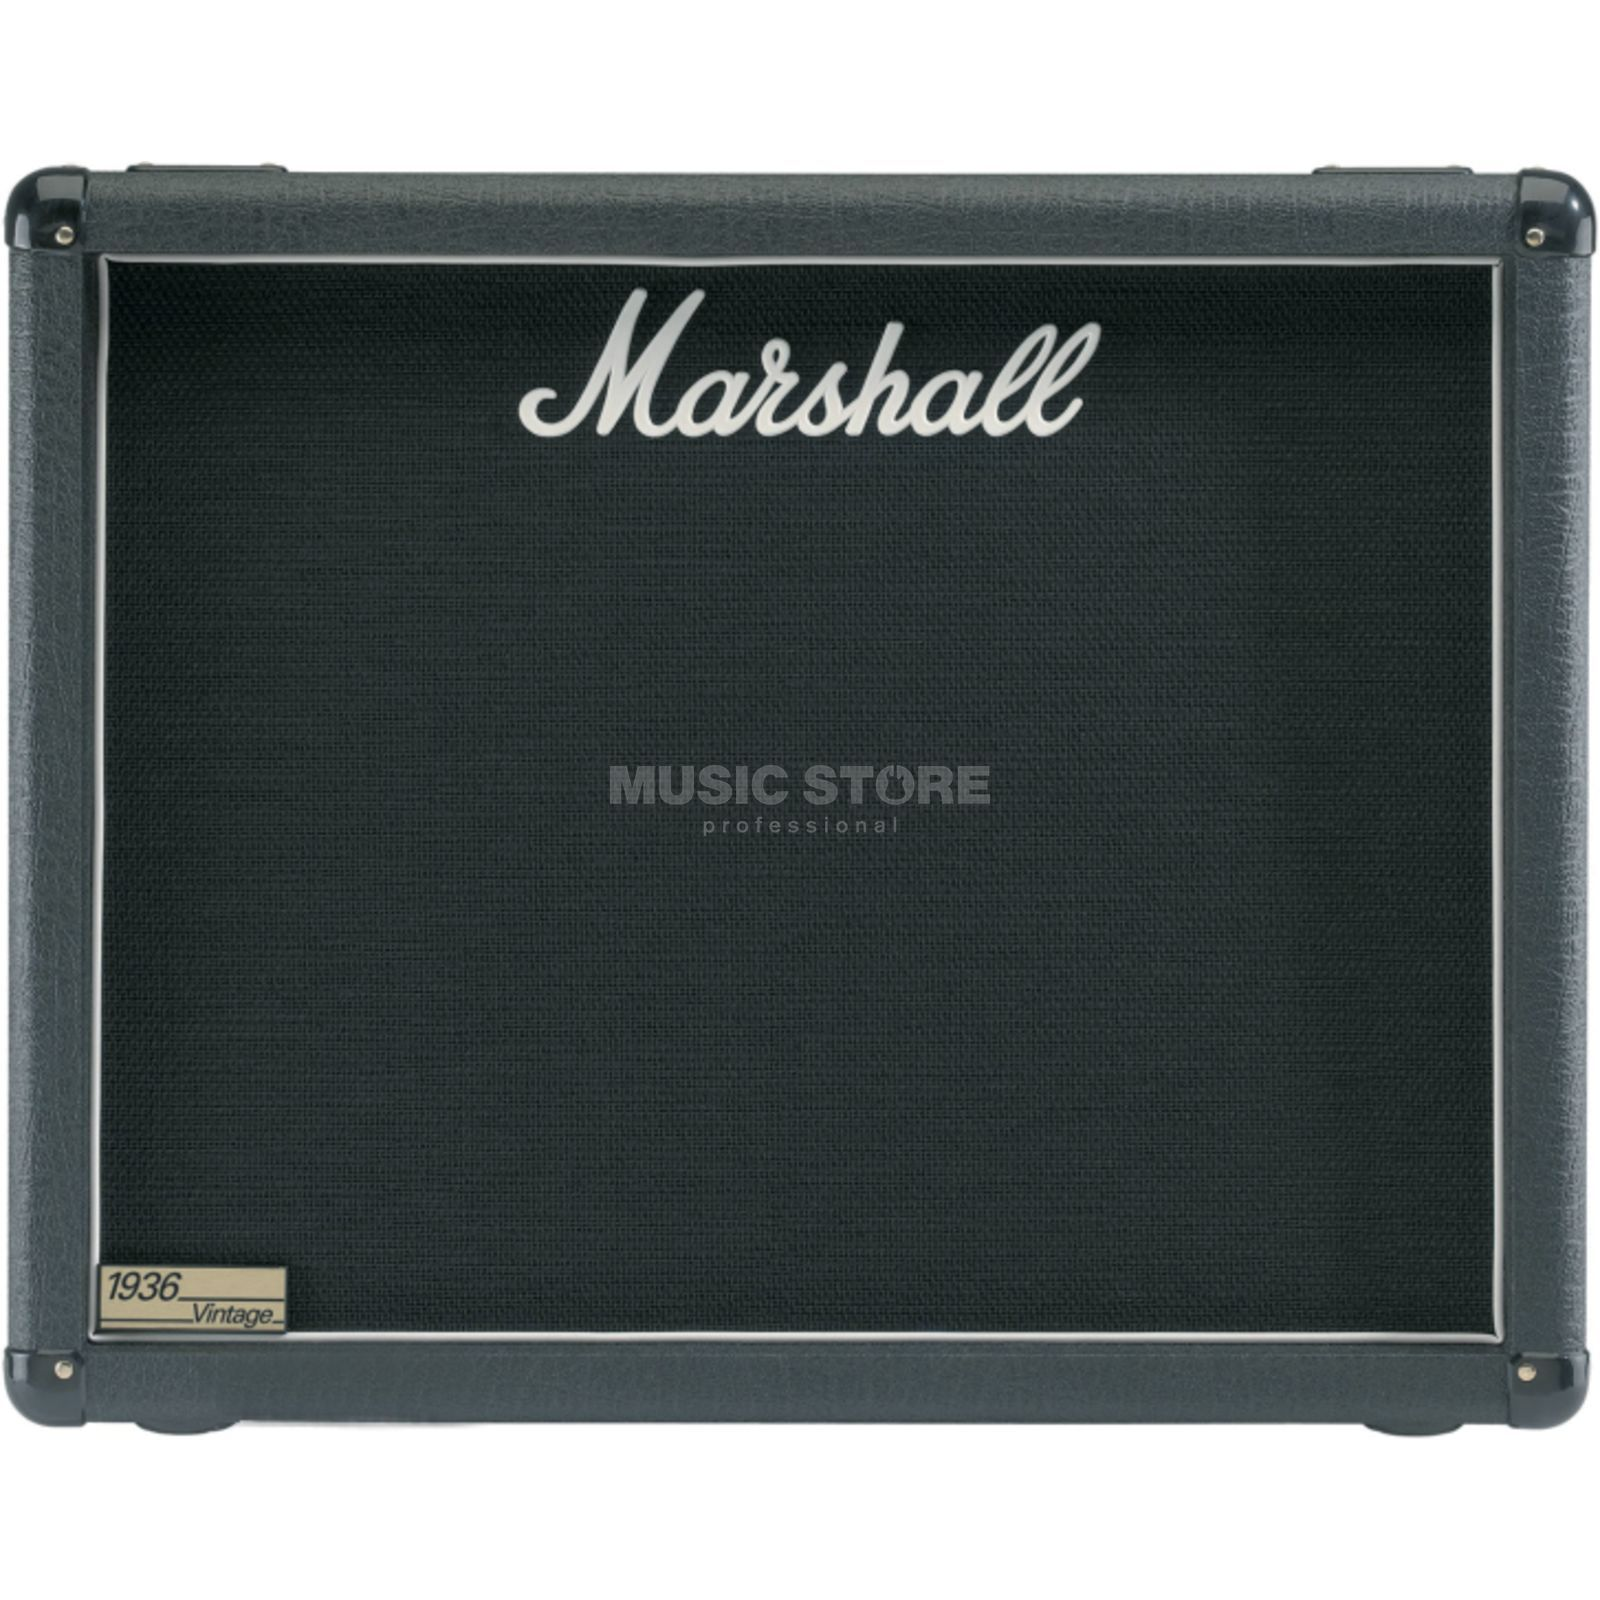 speakers marshall. speakers marshall (